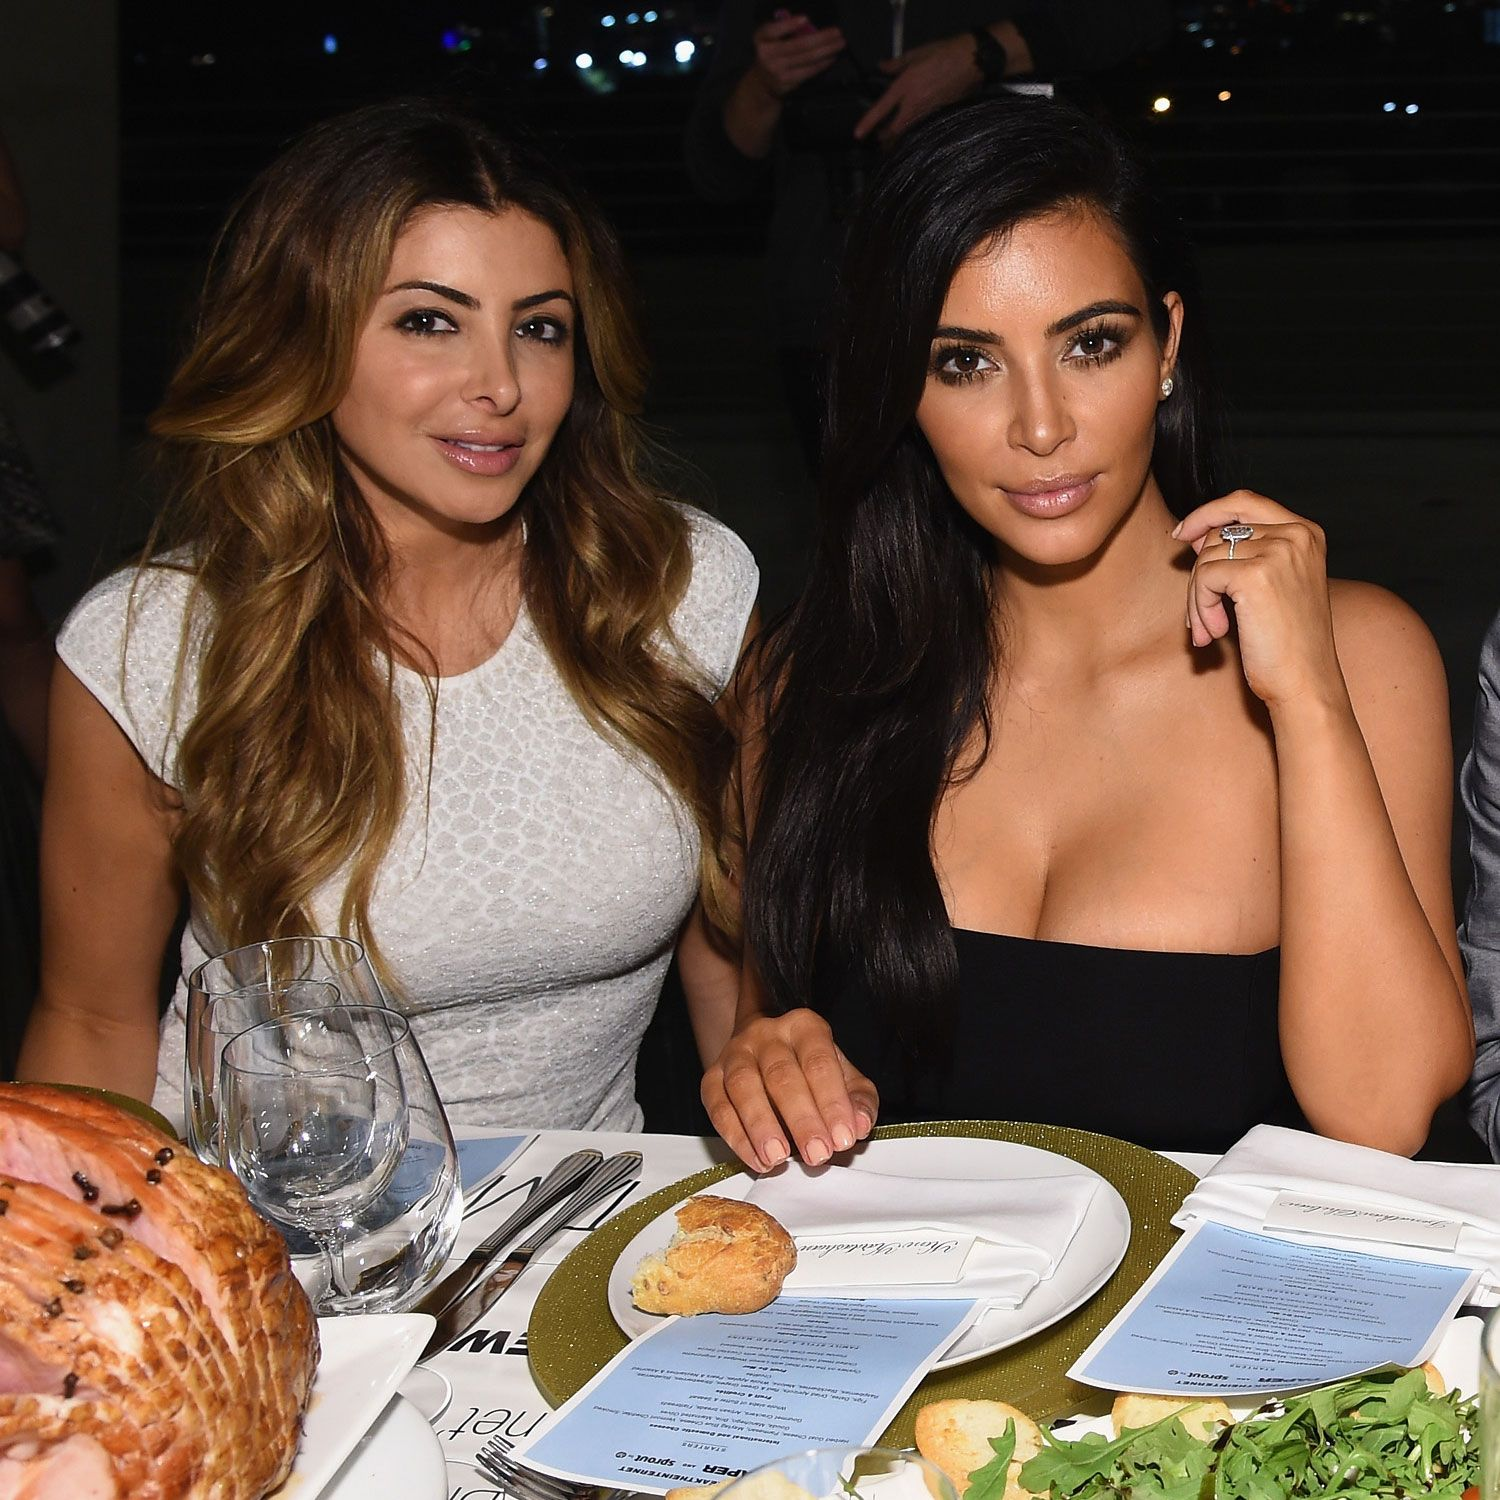 KUWTK: Kim Kardashian Feels 'Betrayed' After Larsa Pippen's Latest Interview!